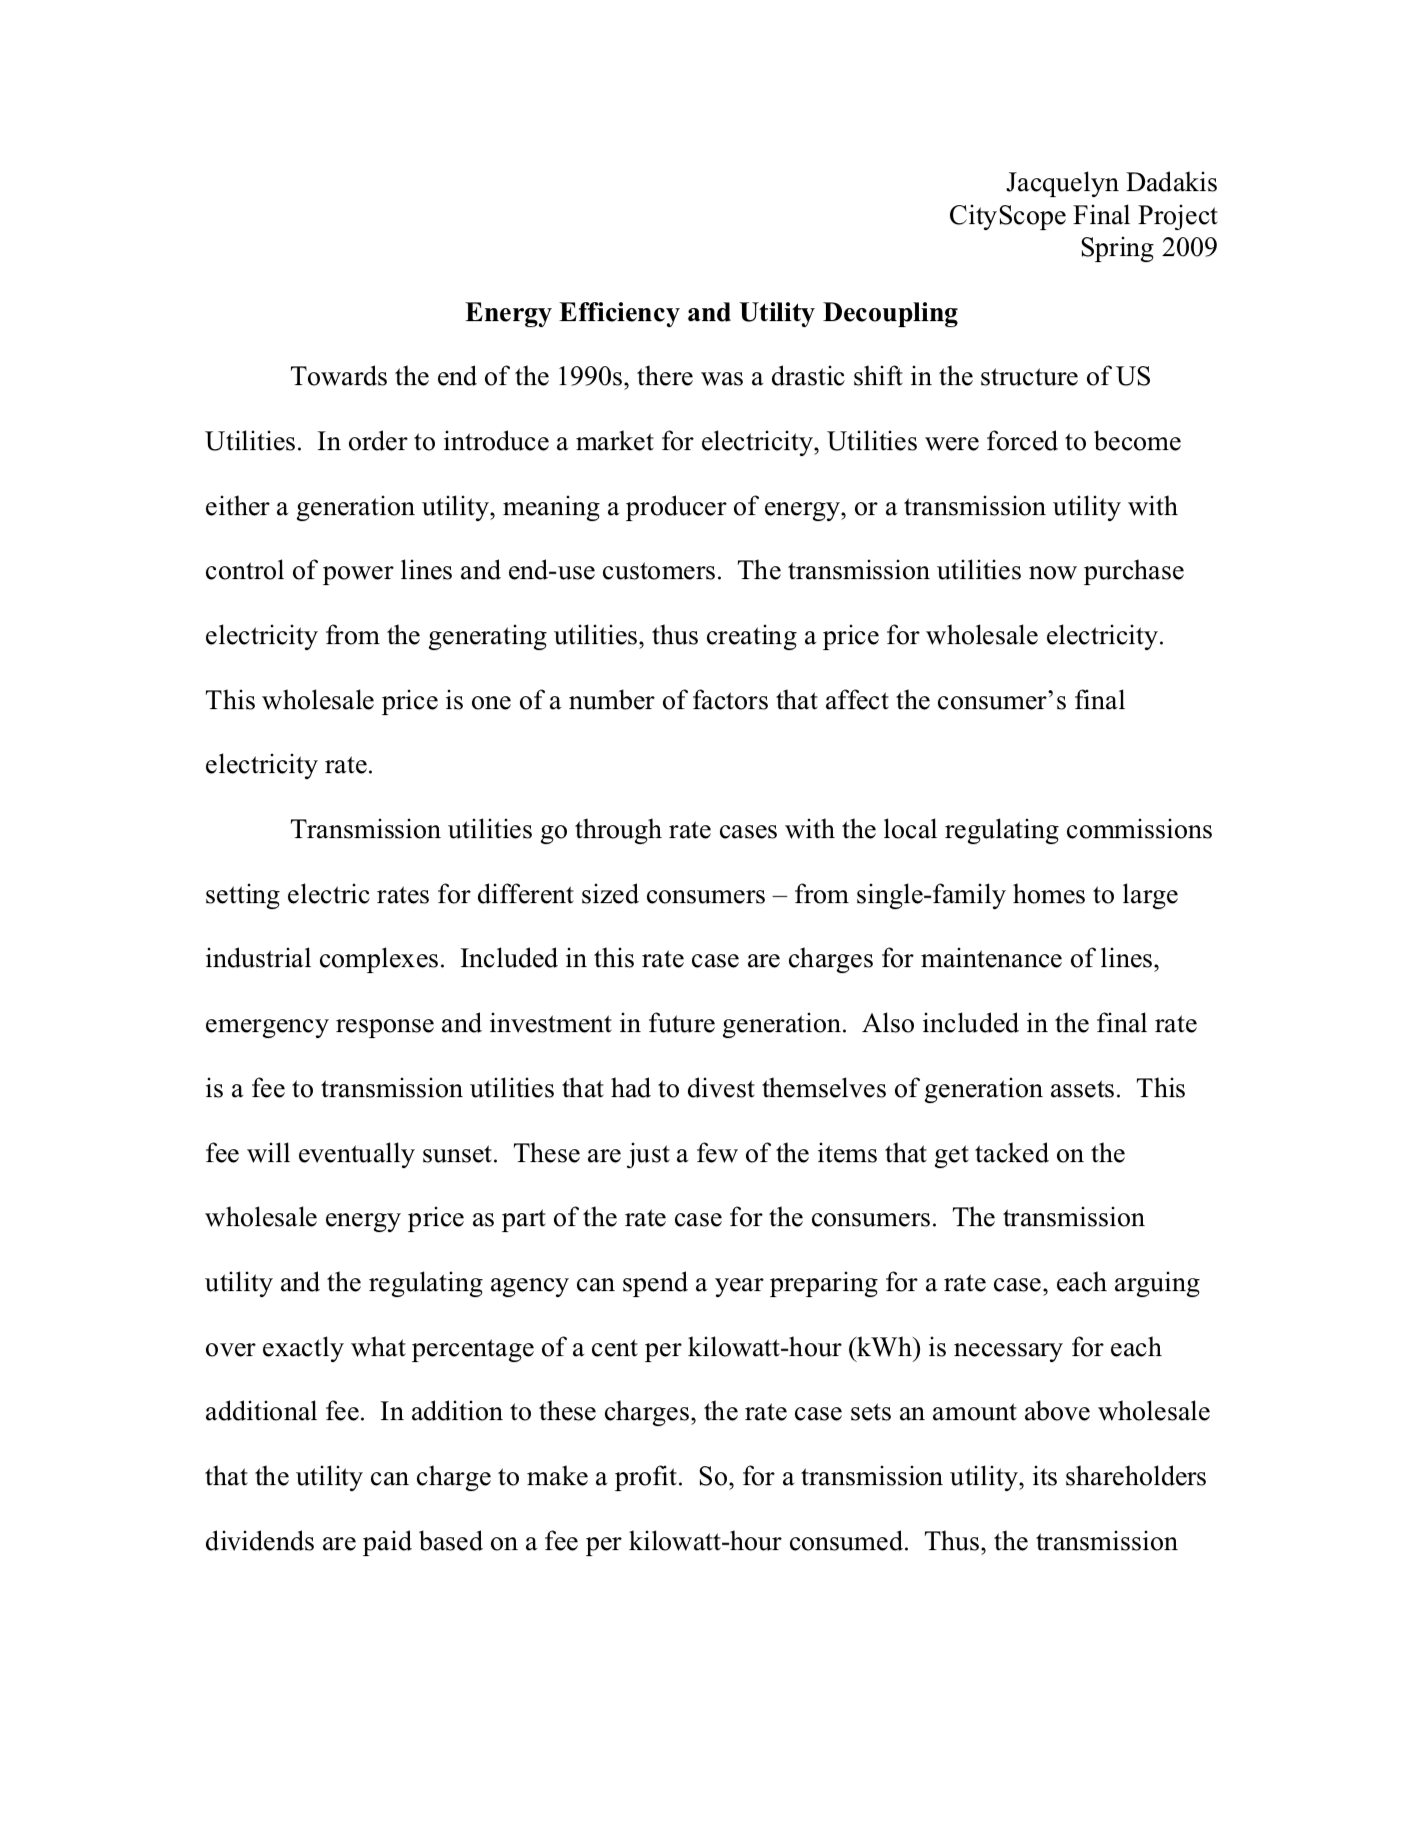 Energy_Efficiency_and_Utility_Decoupling.png